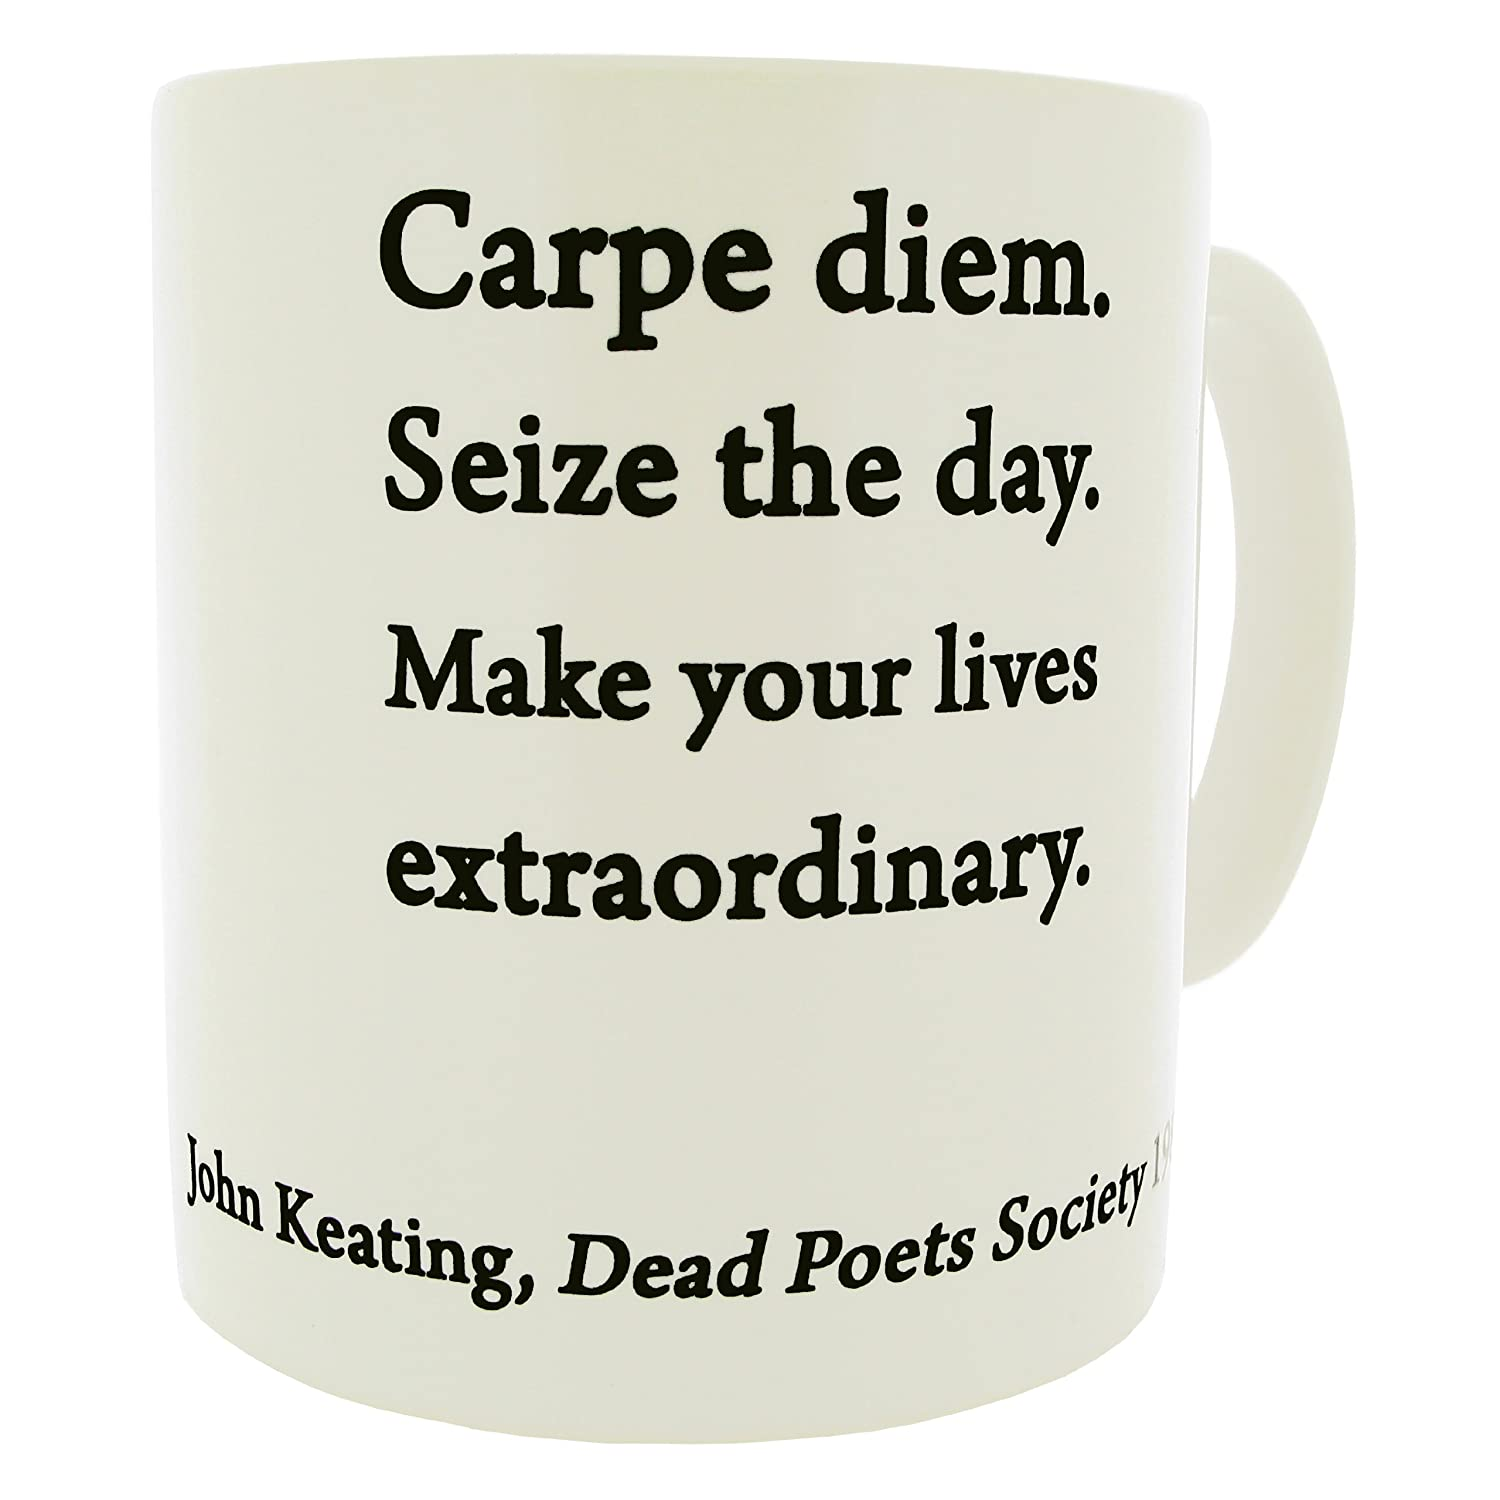 carpe diem quote mug john keating dead poets society  carpe diem quote mug john keating dead poets society mugsnkisses range mother s day birthday christmas office tea coffee gift mug amazon co uk